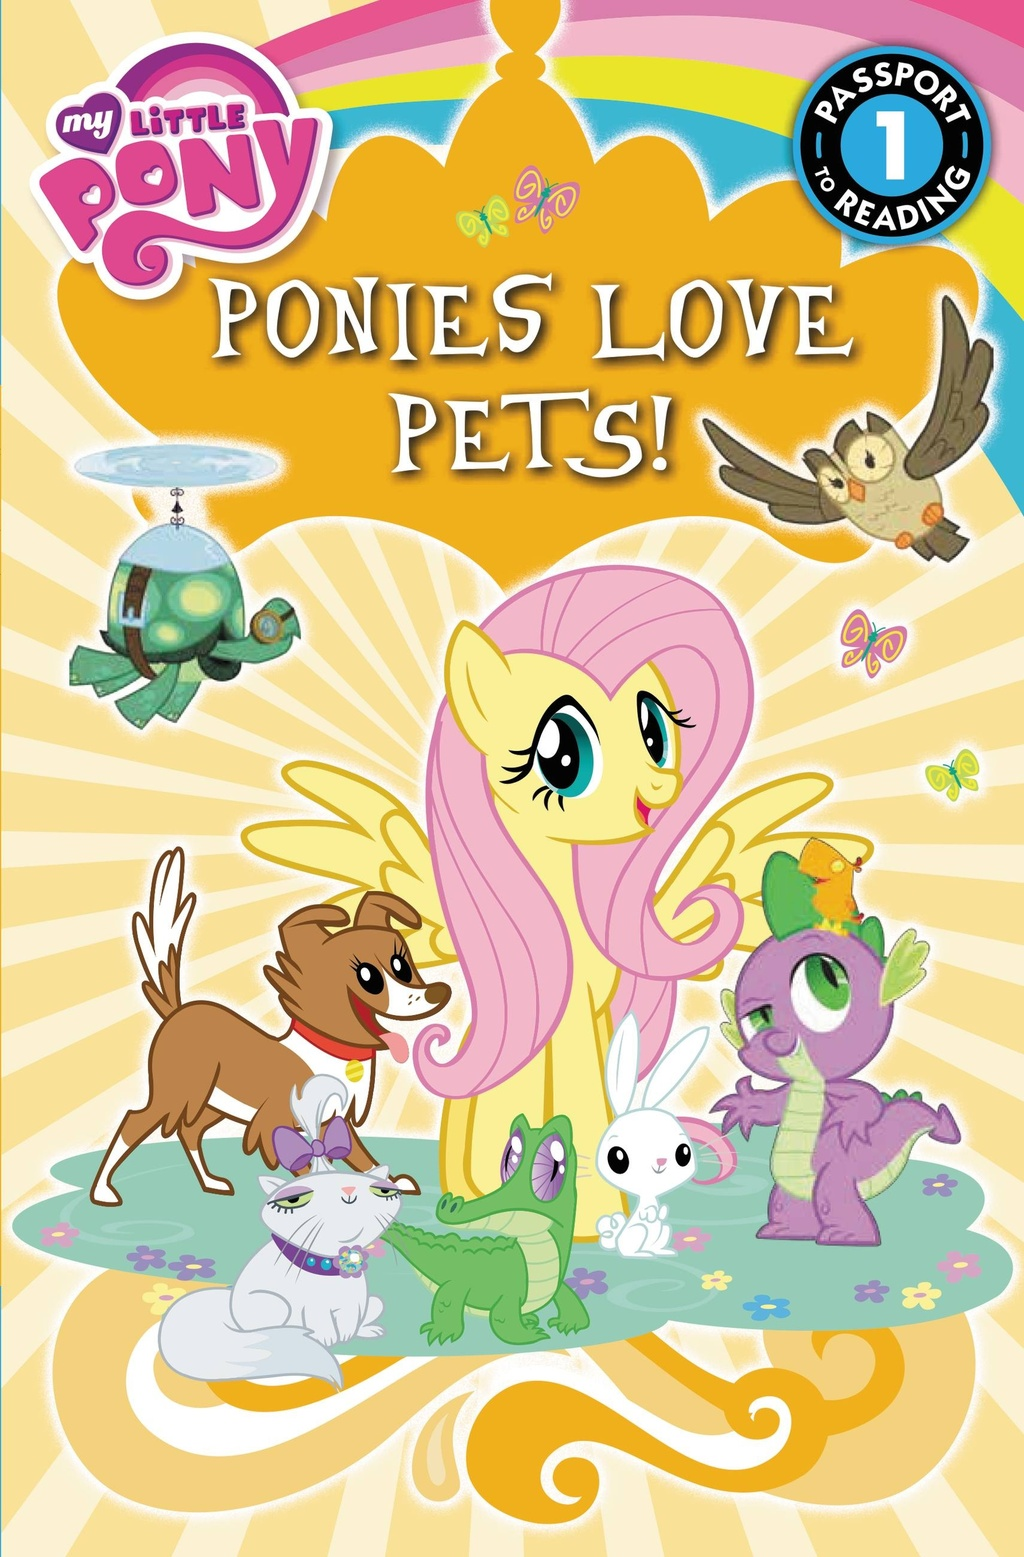 image - my little pony ponies love pets! storybook cover | my